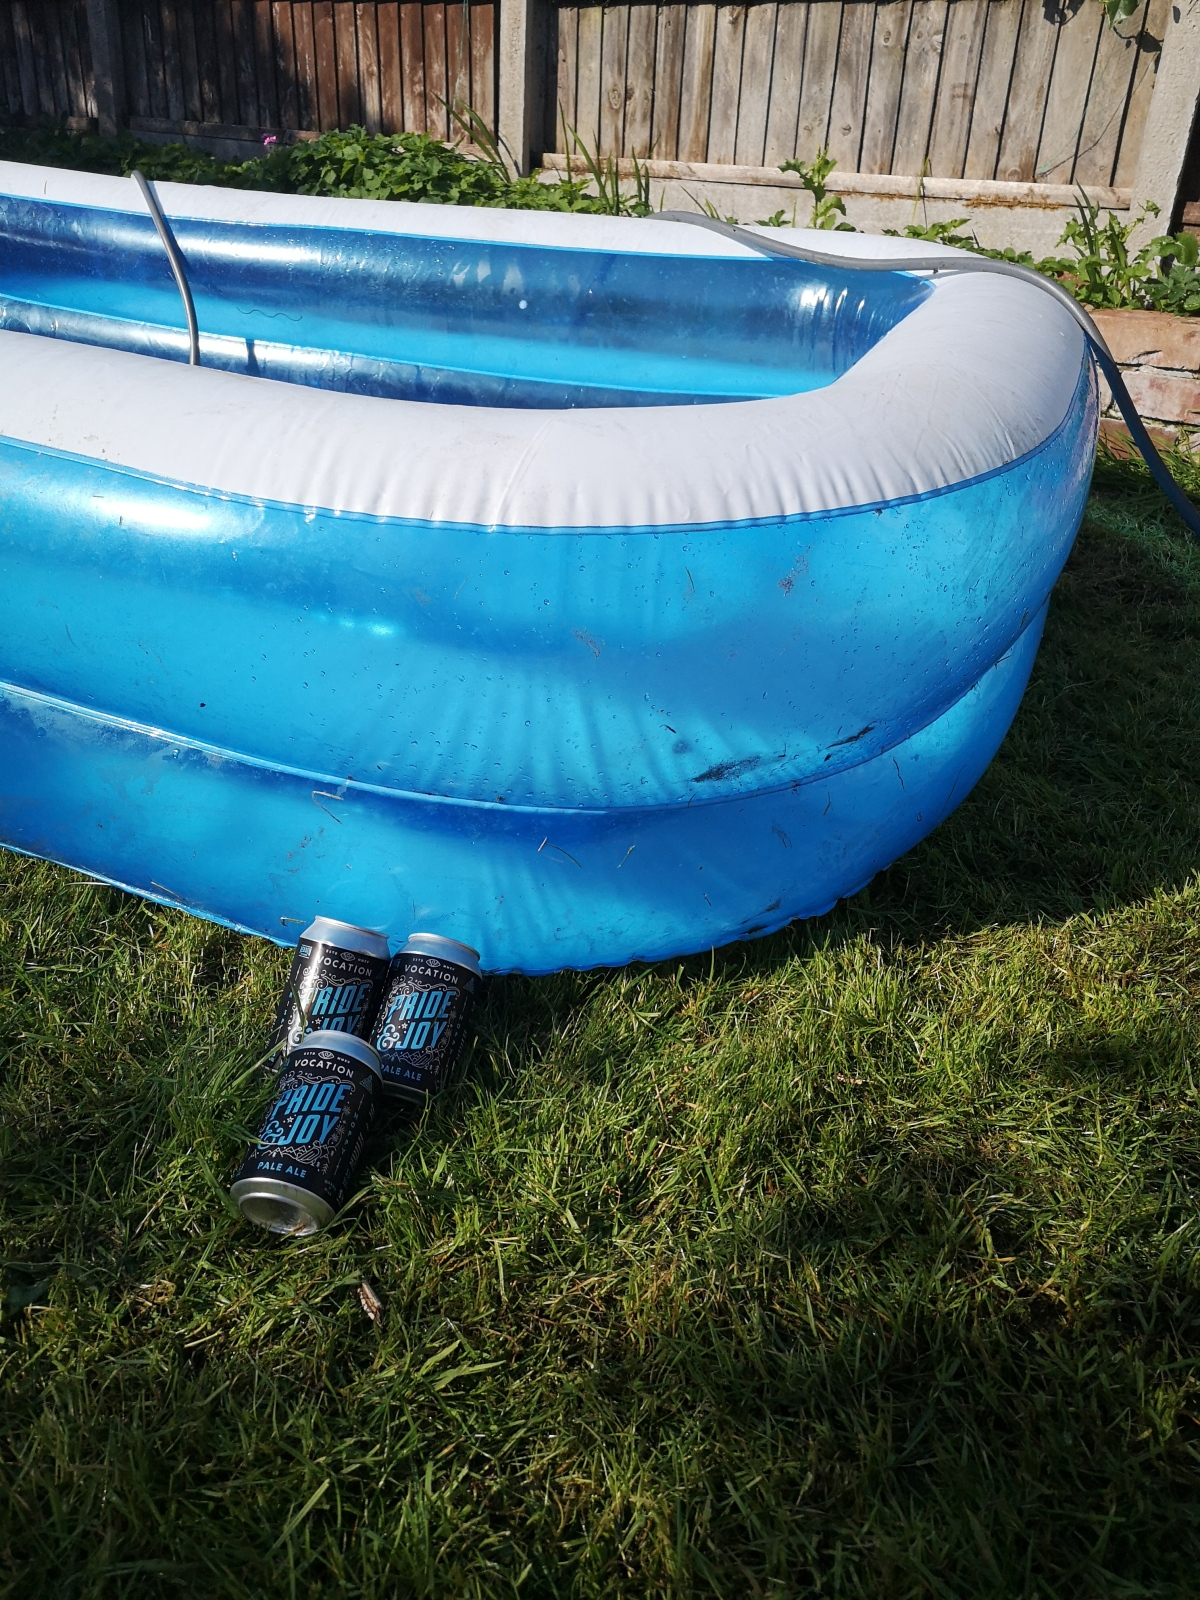 It's beers by the paddling poolweather.